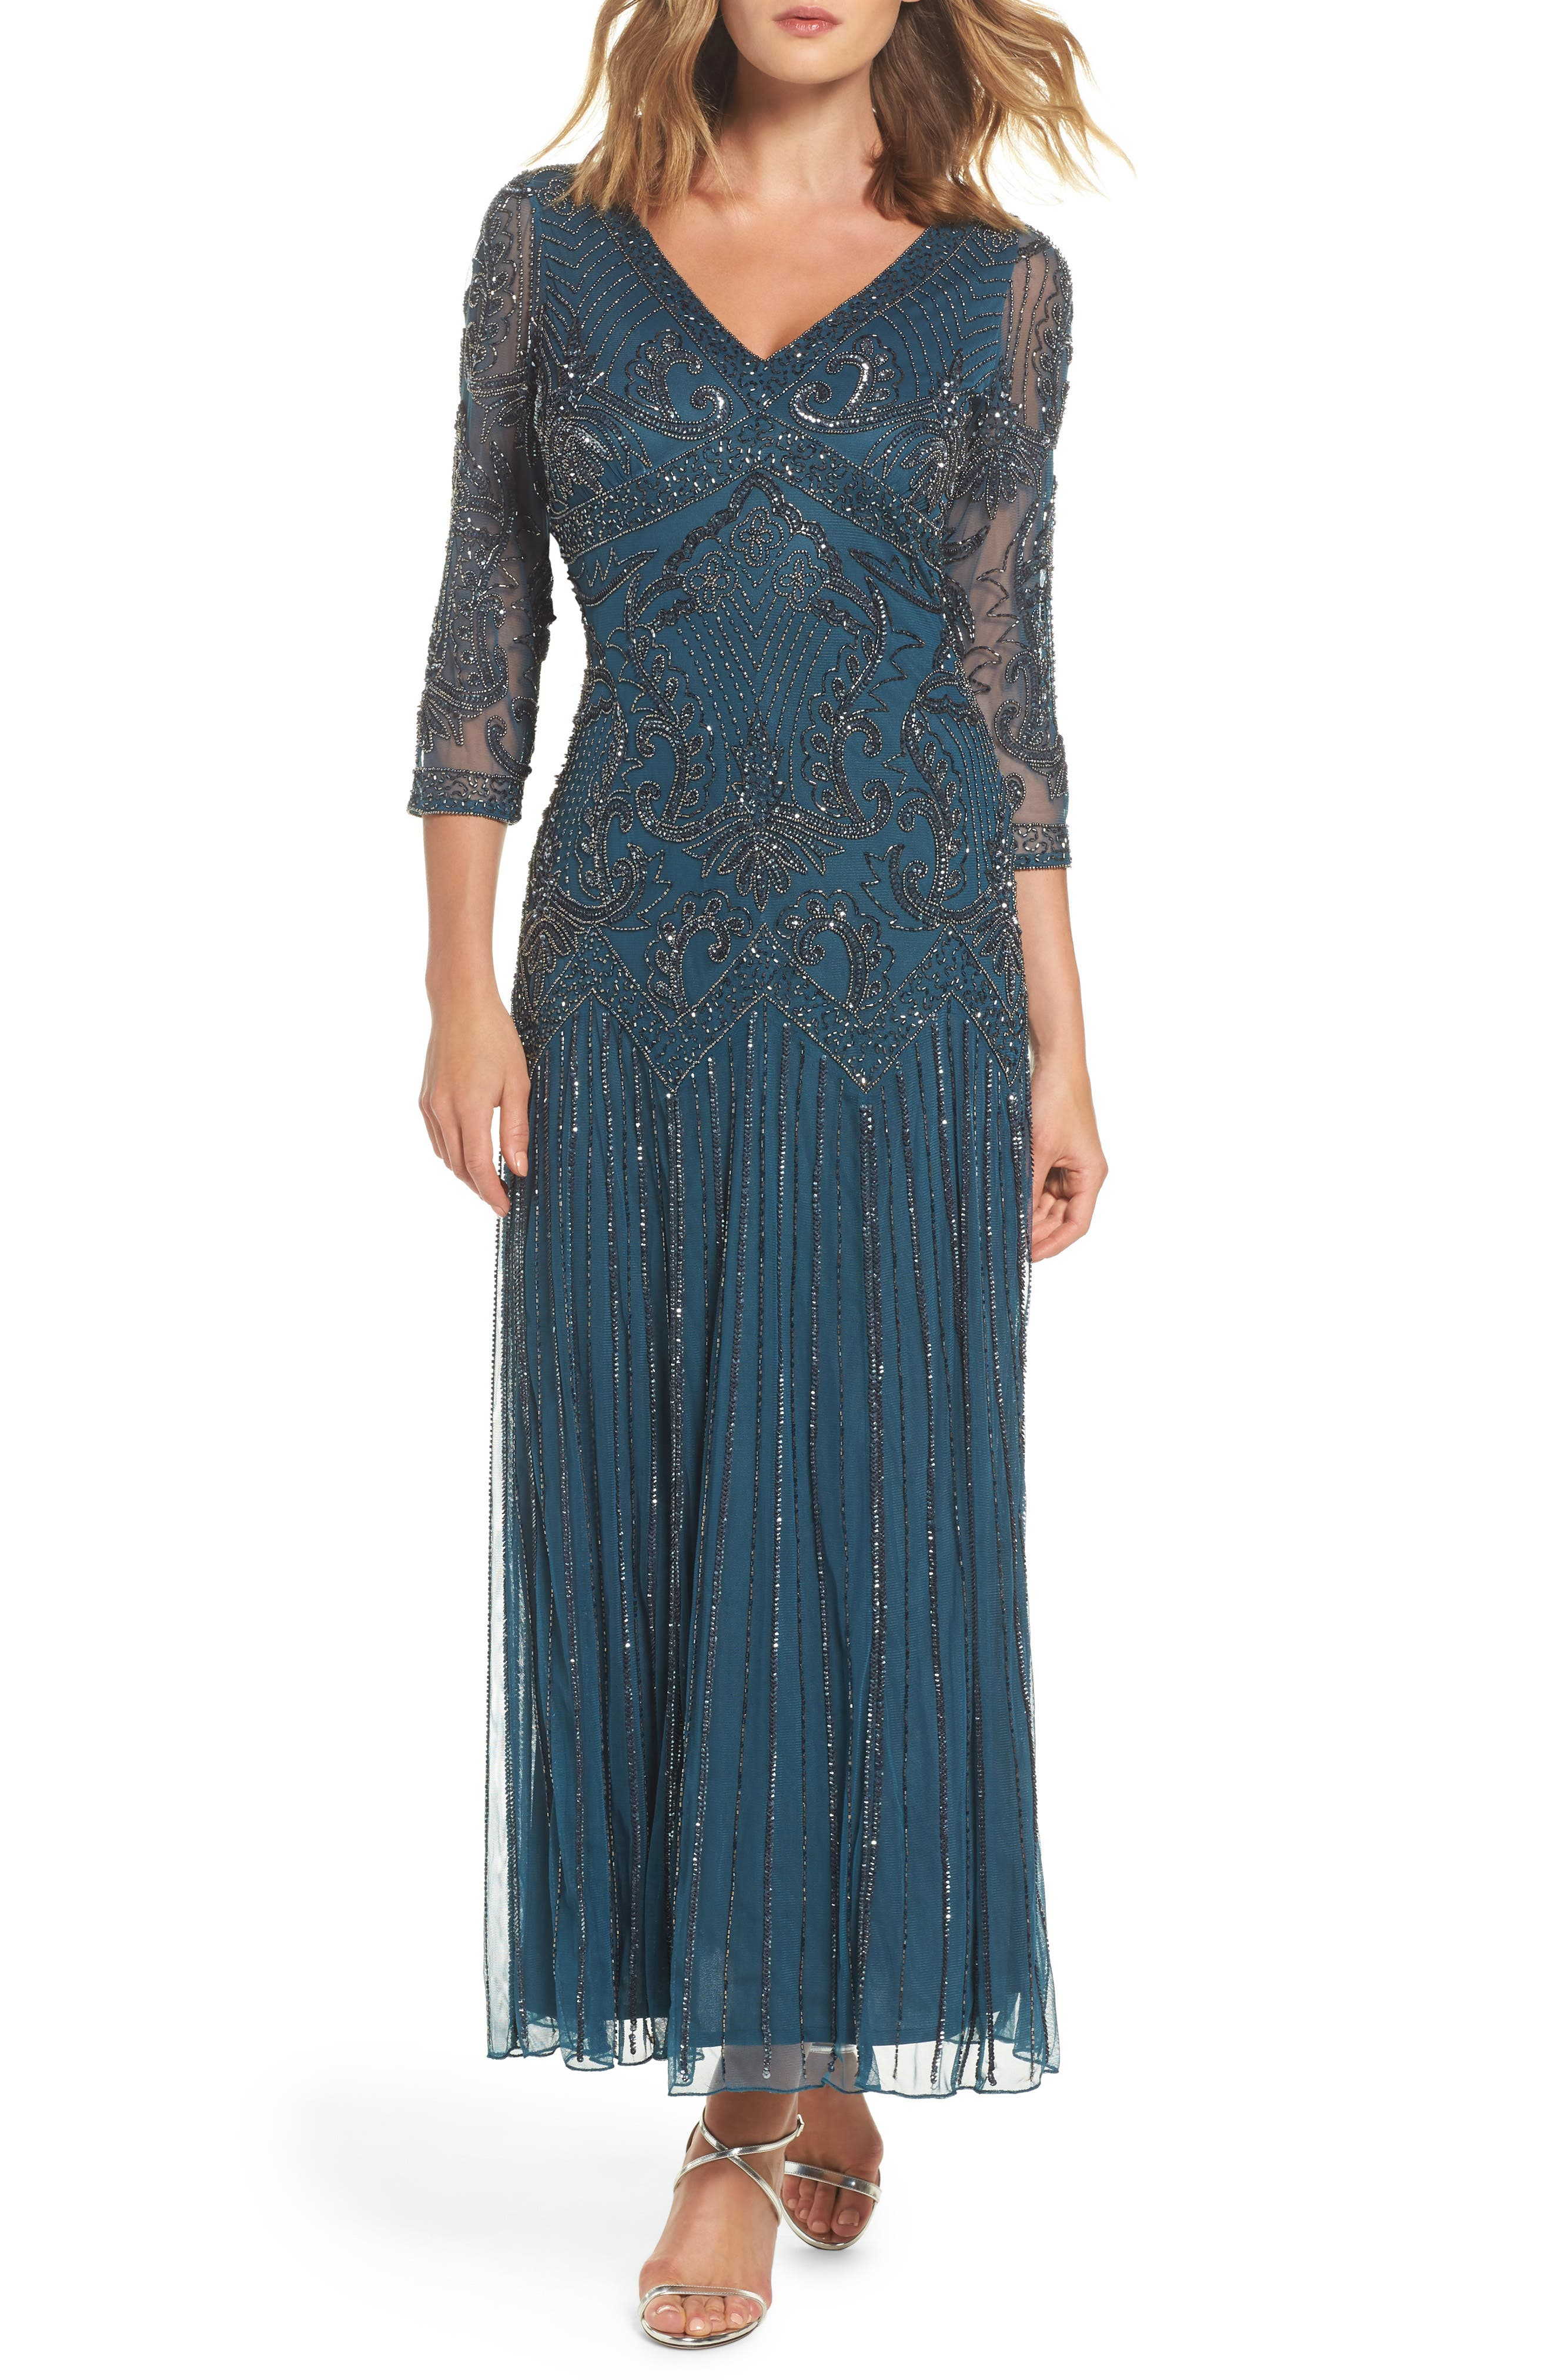 Alternate Image 1 Selected - Pisarro Nights Embellished Mesh Drop Waist Dress (Regular & Petite)